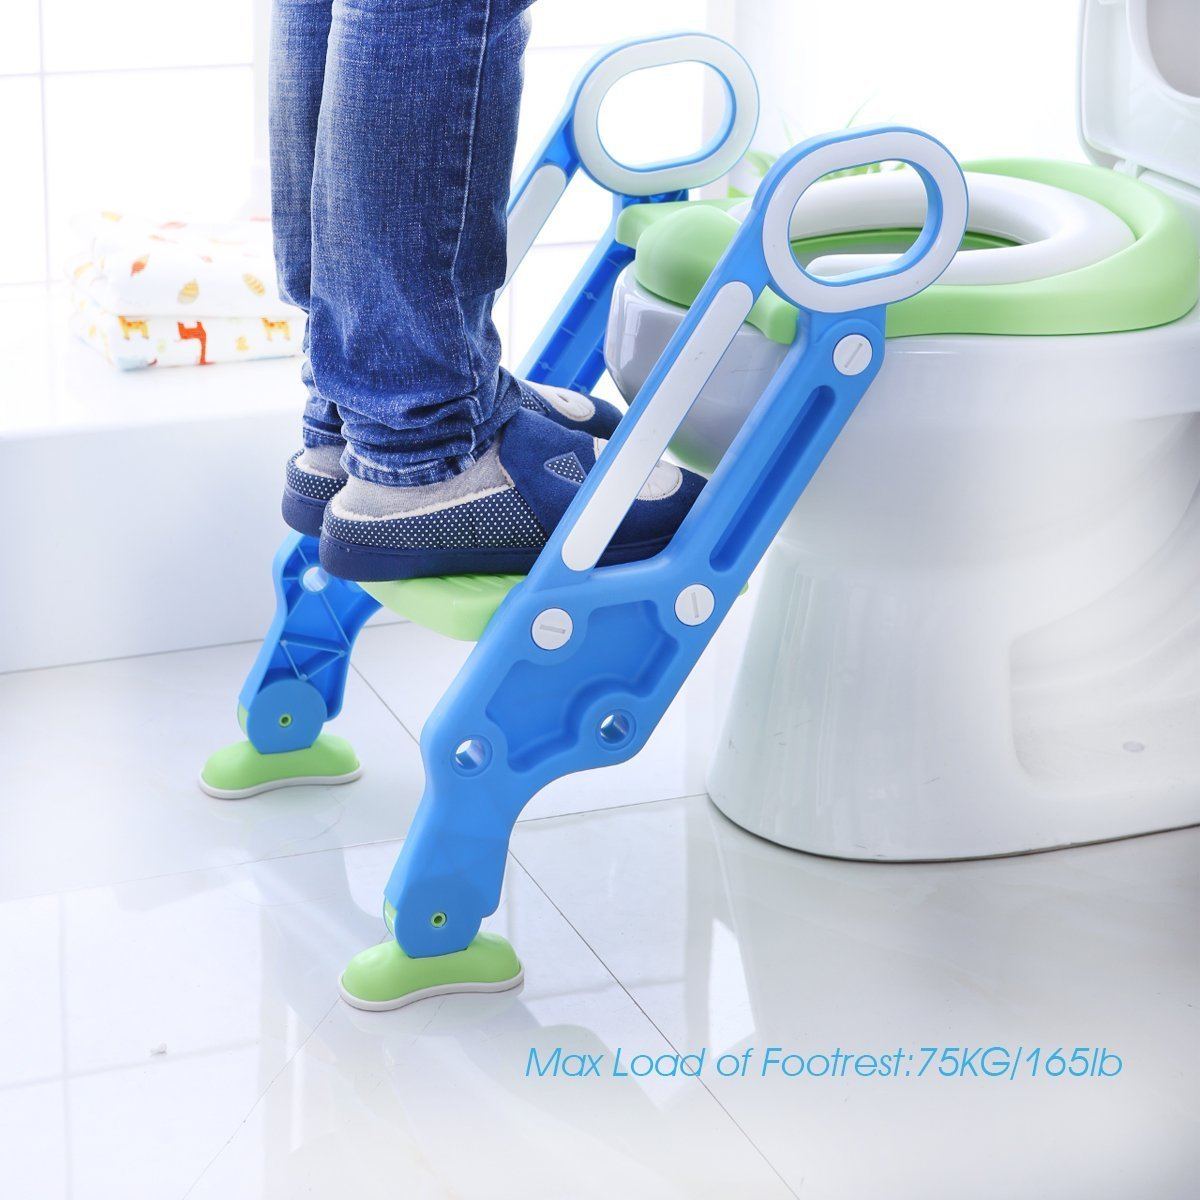 Potty Toilet Trainer Seat with Step Stool Ladder Adjustable Baby Toddler Kid Potty Toilet Seat for Boy and Girl Children's Toilet Training Seat Chair by Mangohood (Image #1)